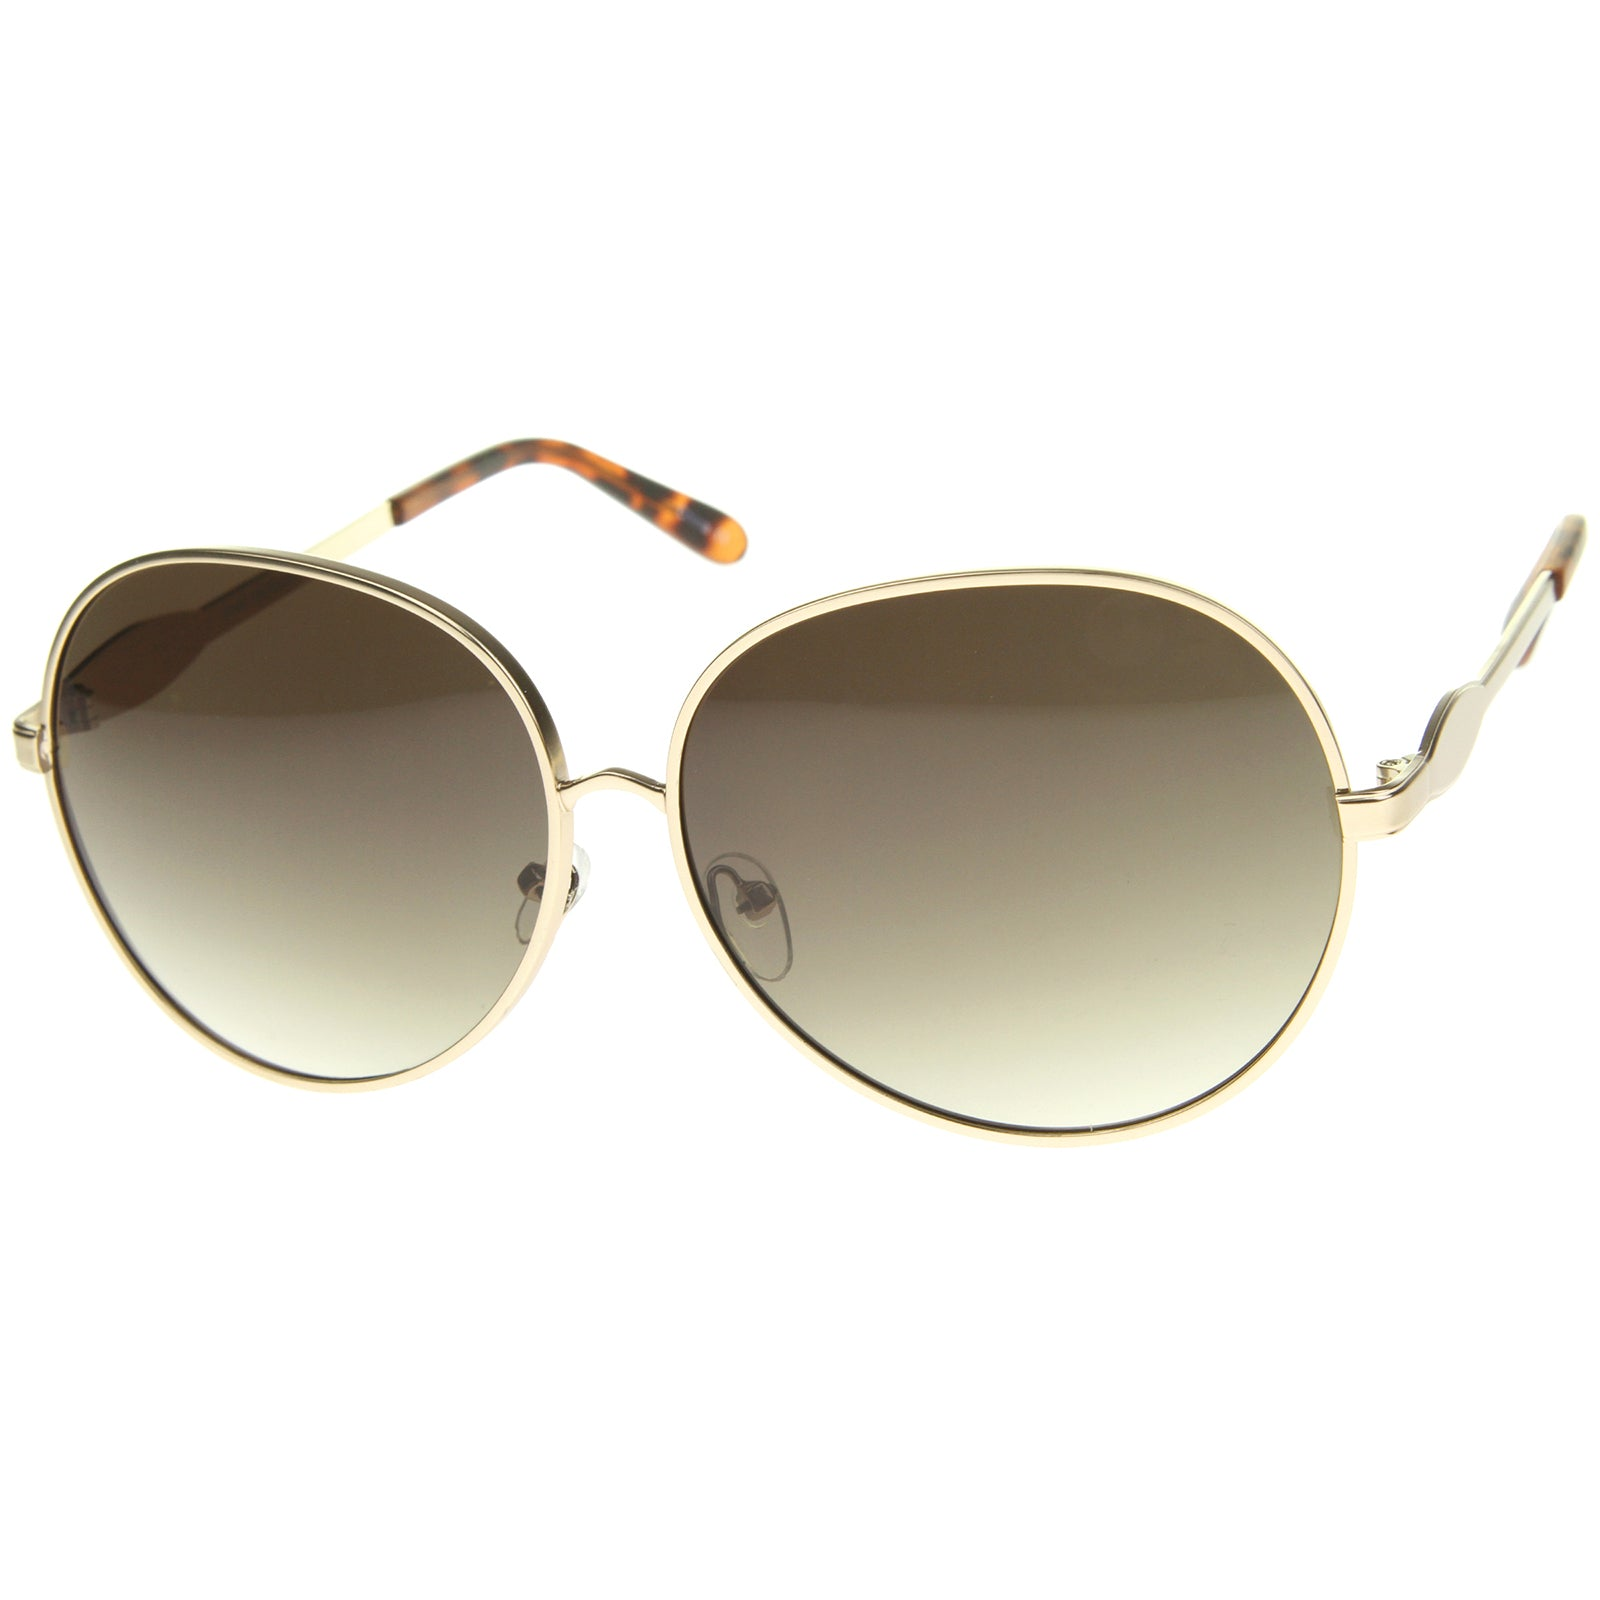 Womens Glam Full Metal Frame Oversized Round Sunglasses 63mm - sunglass.la - 14